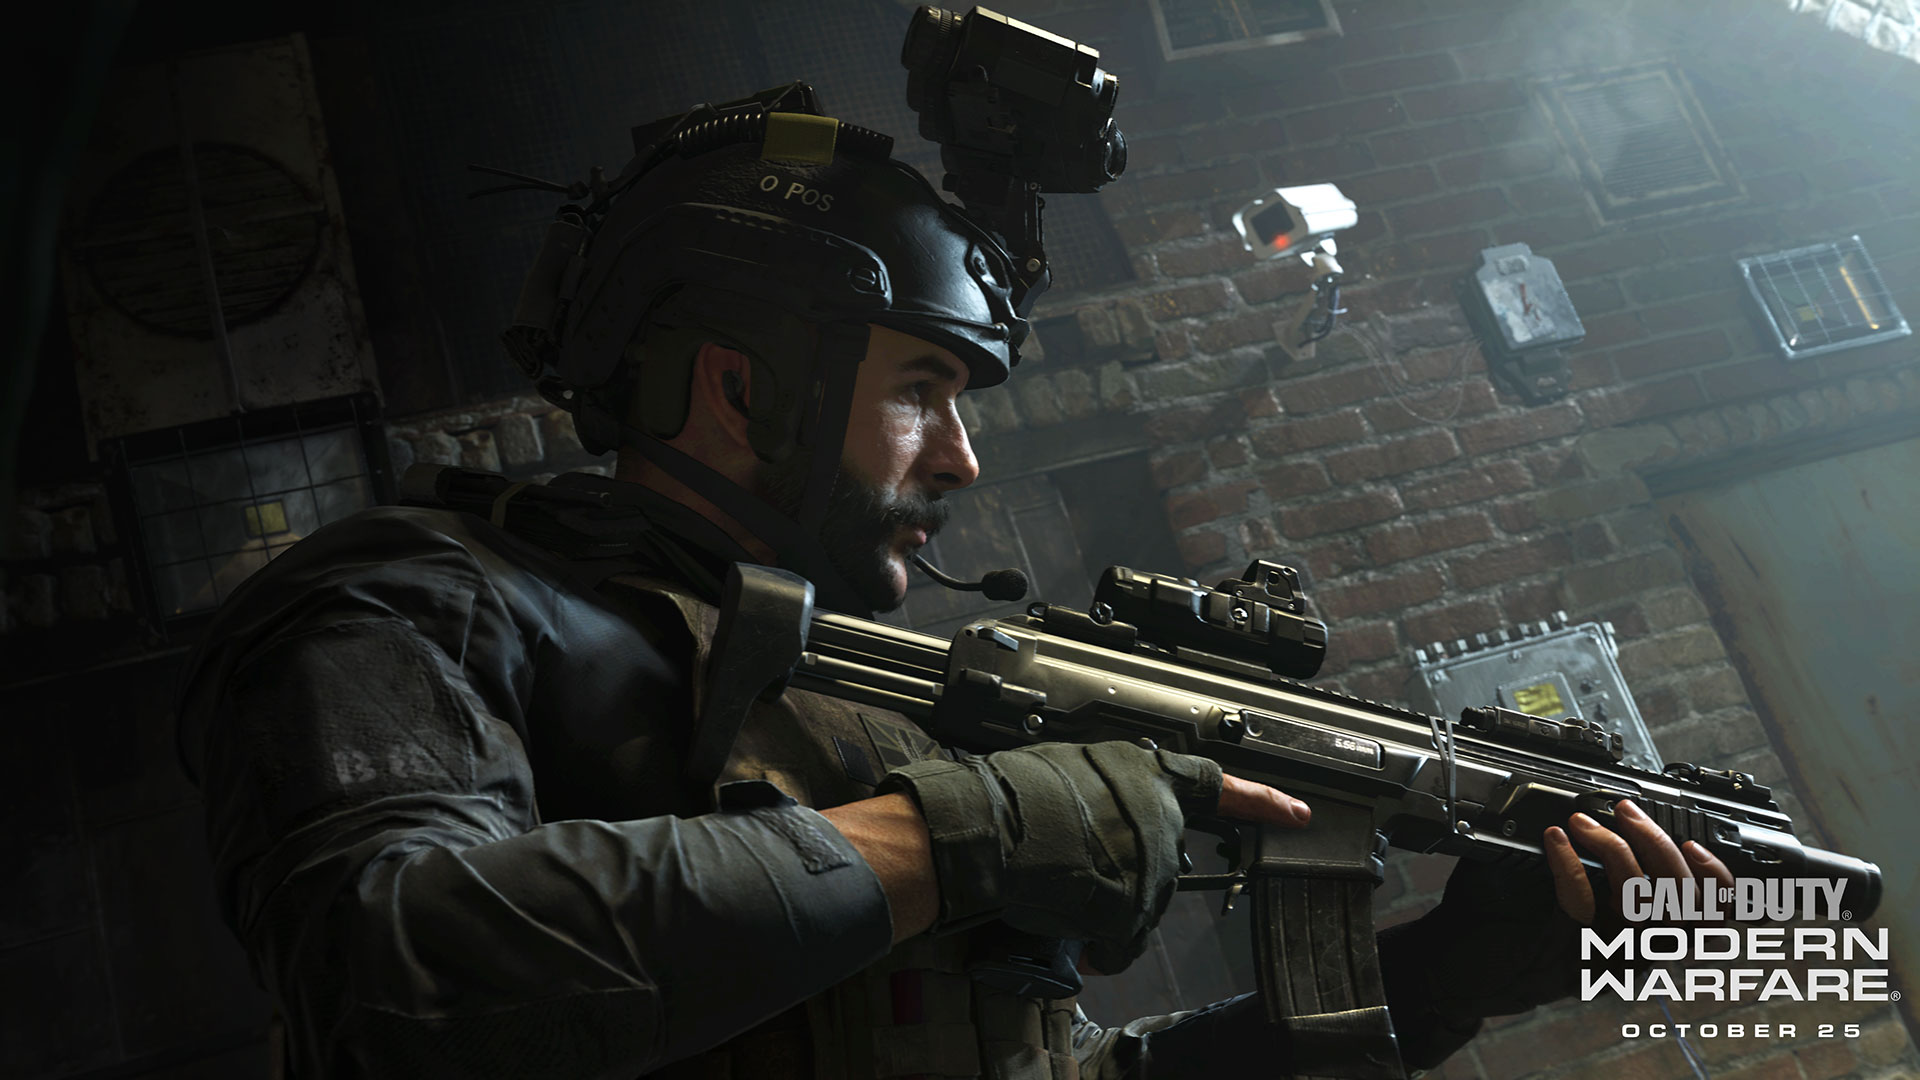 Media asset in full size related to 3dfxzone.it news item entitled as follows: AMD rilascia il driver grafico Radeon Software Adrenalin 2019 Edition 19.10.2   Image Name: news30117_Call-of-Duty-Modern-Warfare_1.jpg